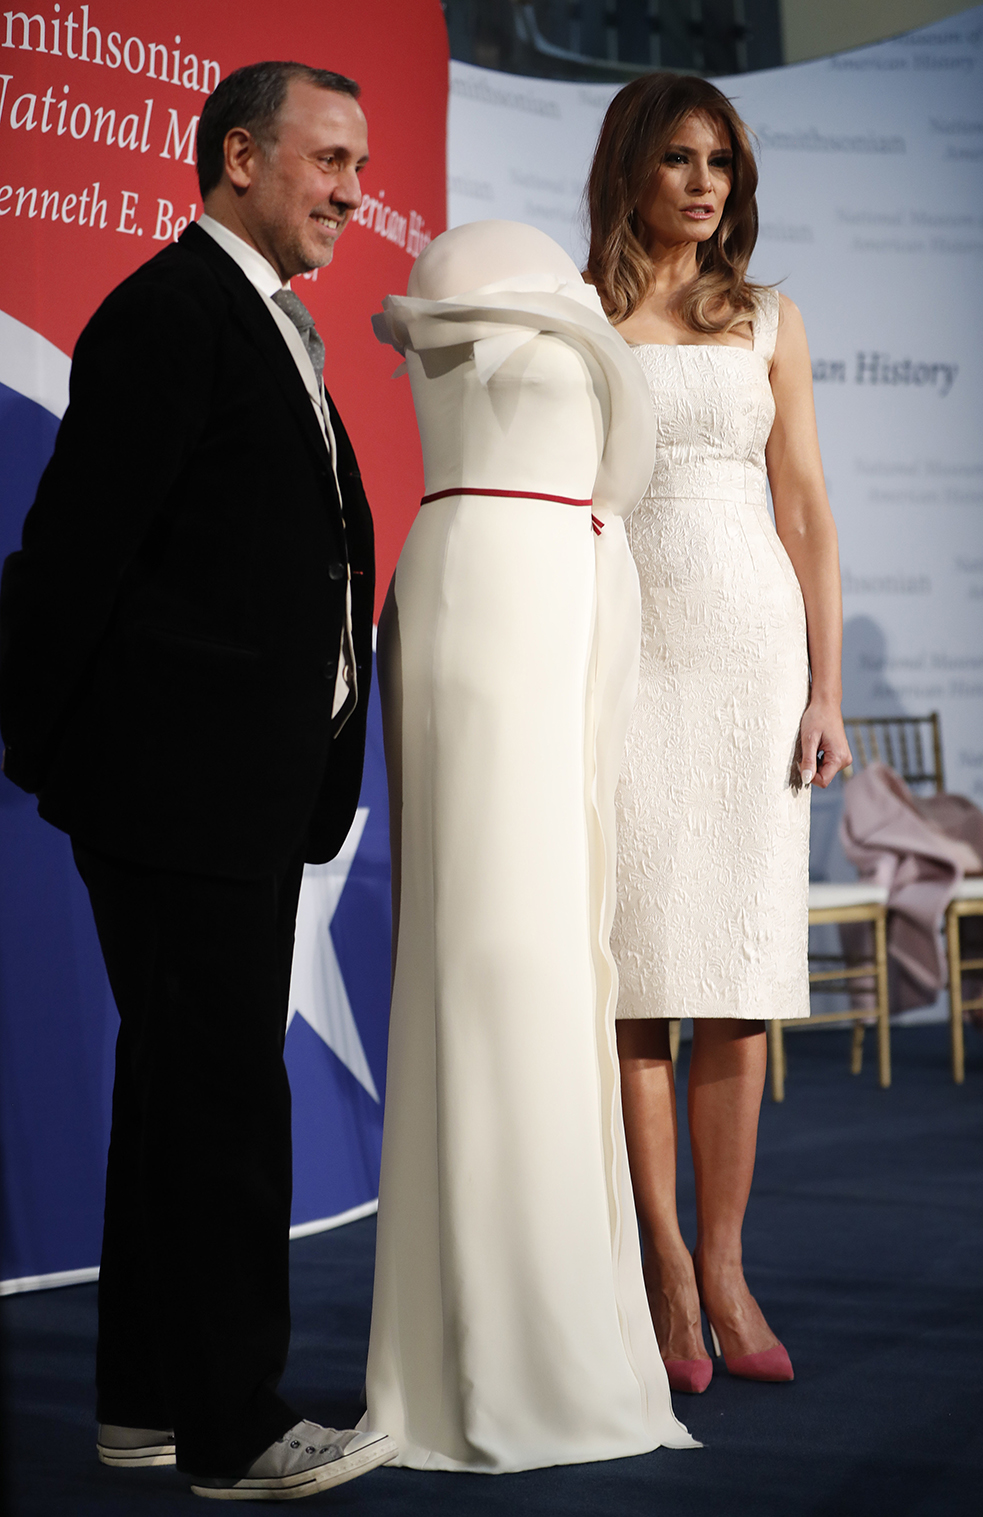 Melania Trump, Herve Pierre. First lady Melania Trump, right, donates her inaugural gown, designed by Herve Pierre, left, to the First Ladies' Collection at the Smithsonian's National Museum of American History, during a ceremony in WashingtonMelania Trump, Washington, USA - 20 Oct 2017